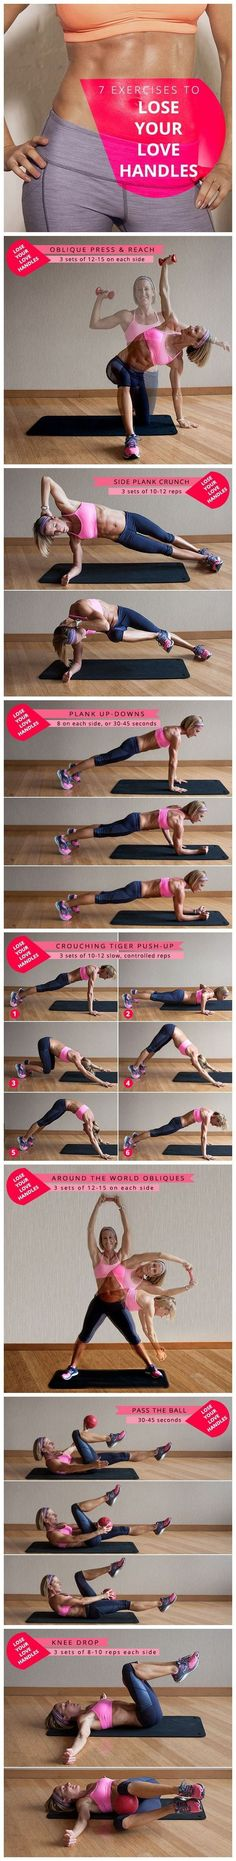 #HowTo Lose Love Handles